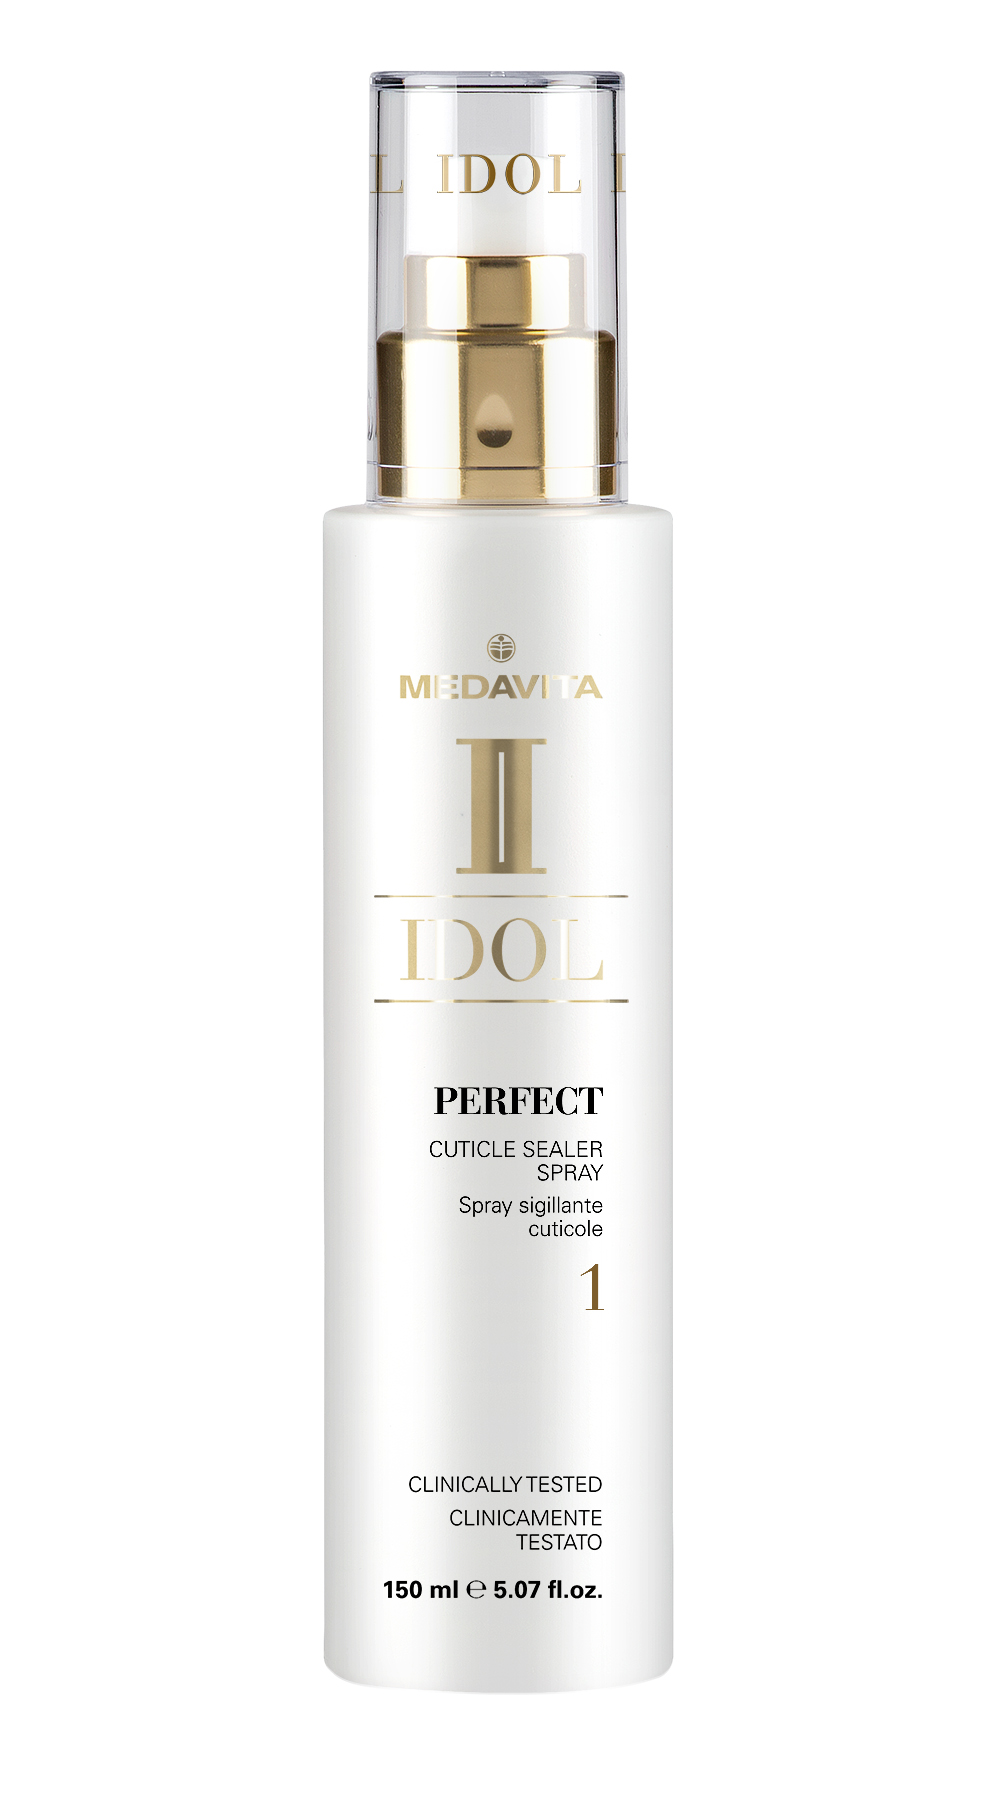 Perfect IDOL 150ml DEF-klein